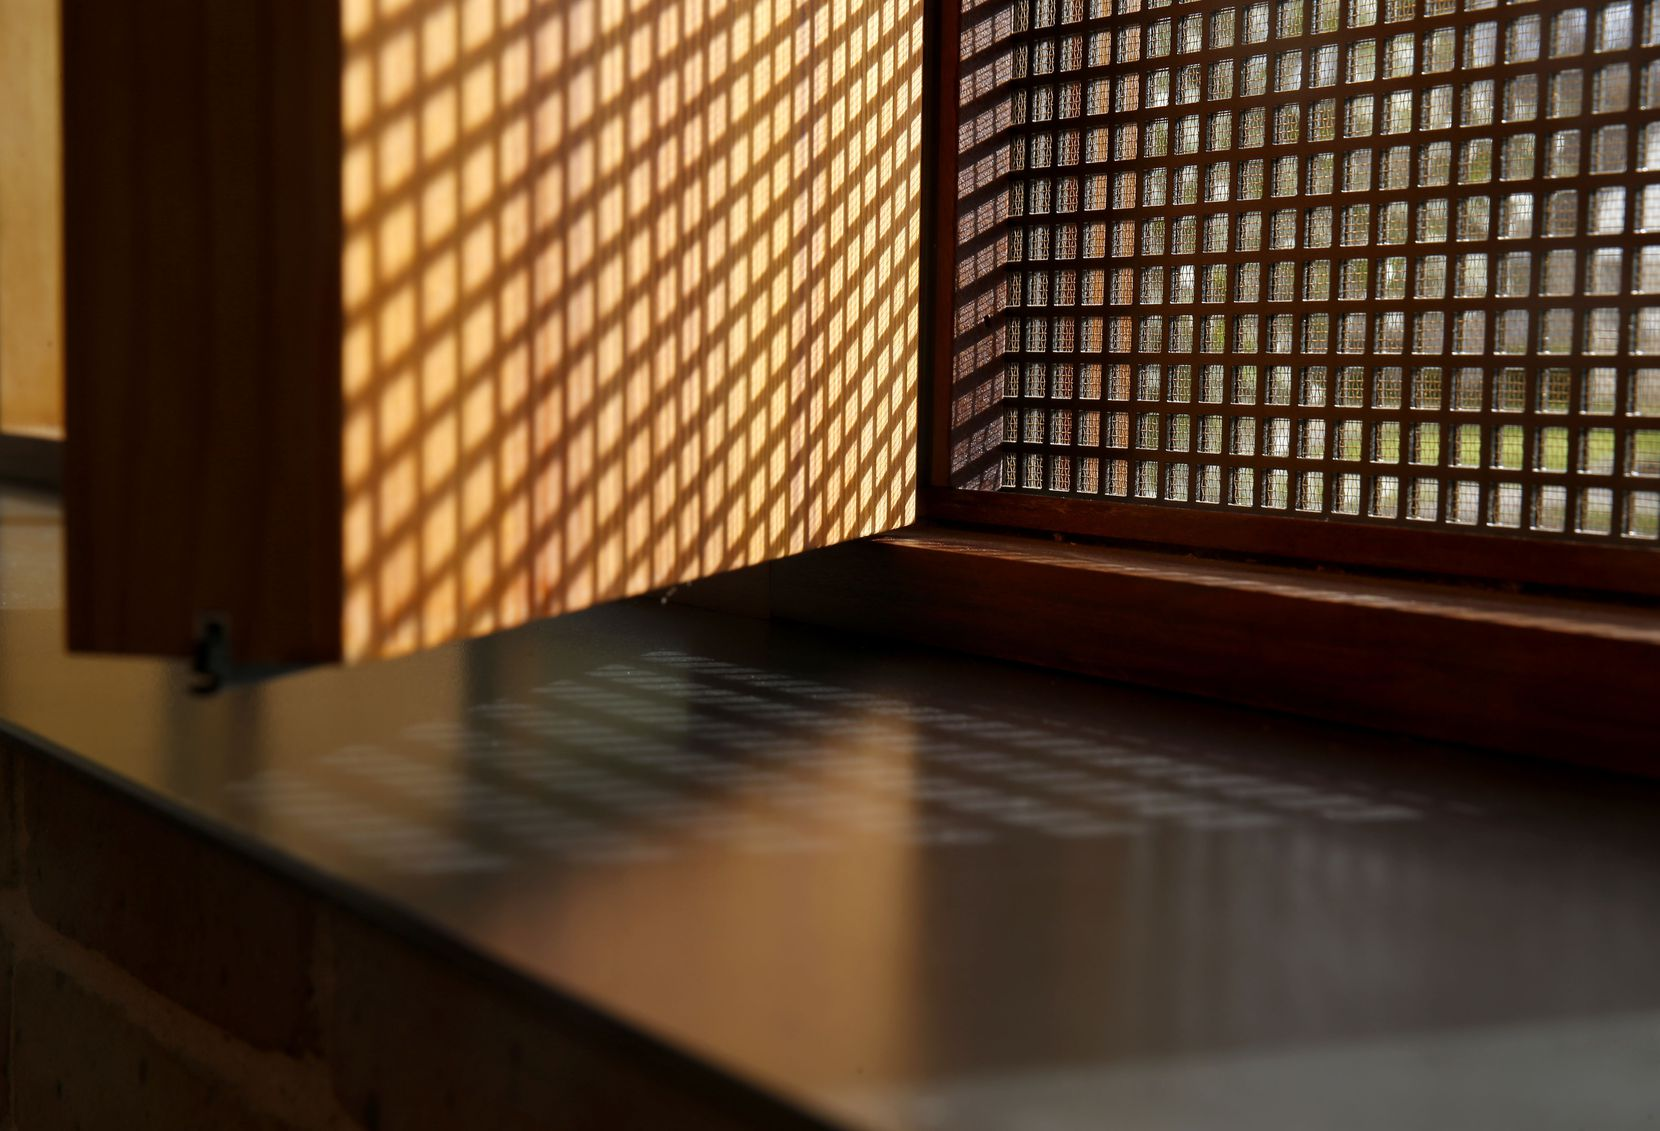 Morning light filters through a perforated steel screen, casting shadows onto a wooden vent door which opens to allow fresh air into the home. The vents also allow in sounds of the neighborhood, while a tight-knit bronze screen prevents insects.